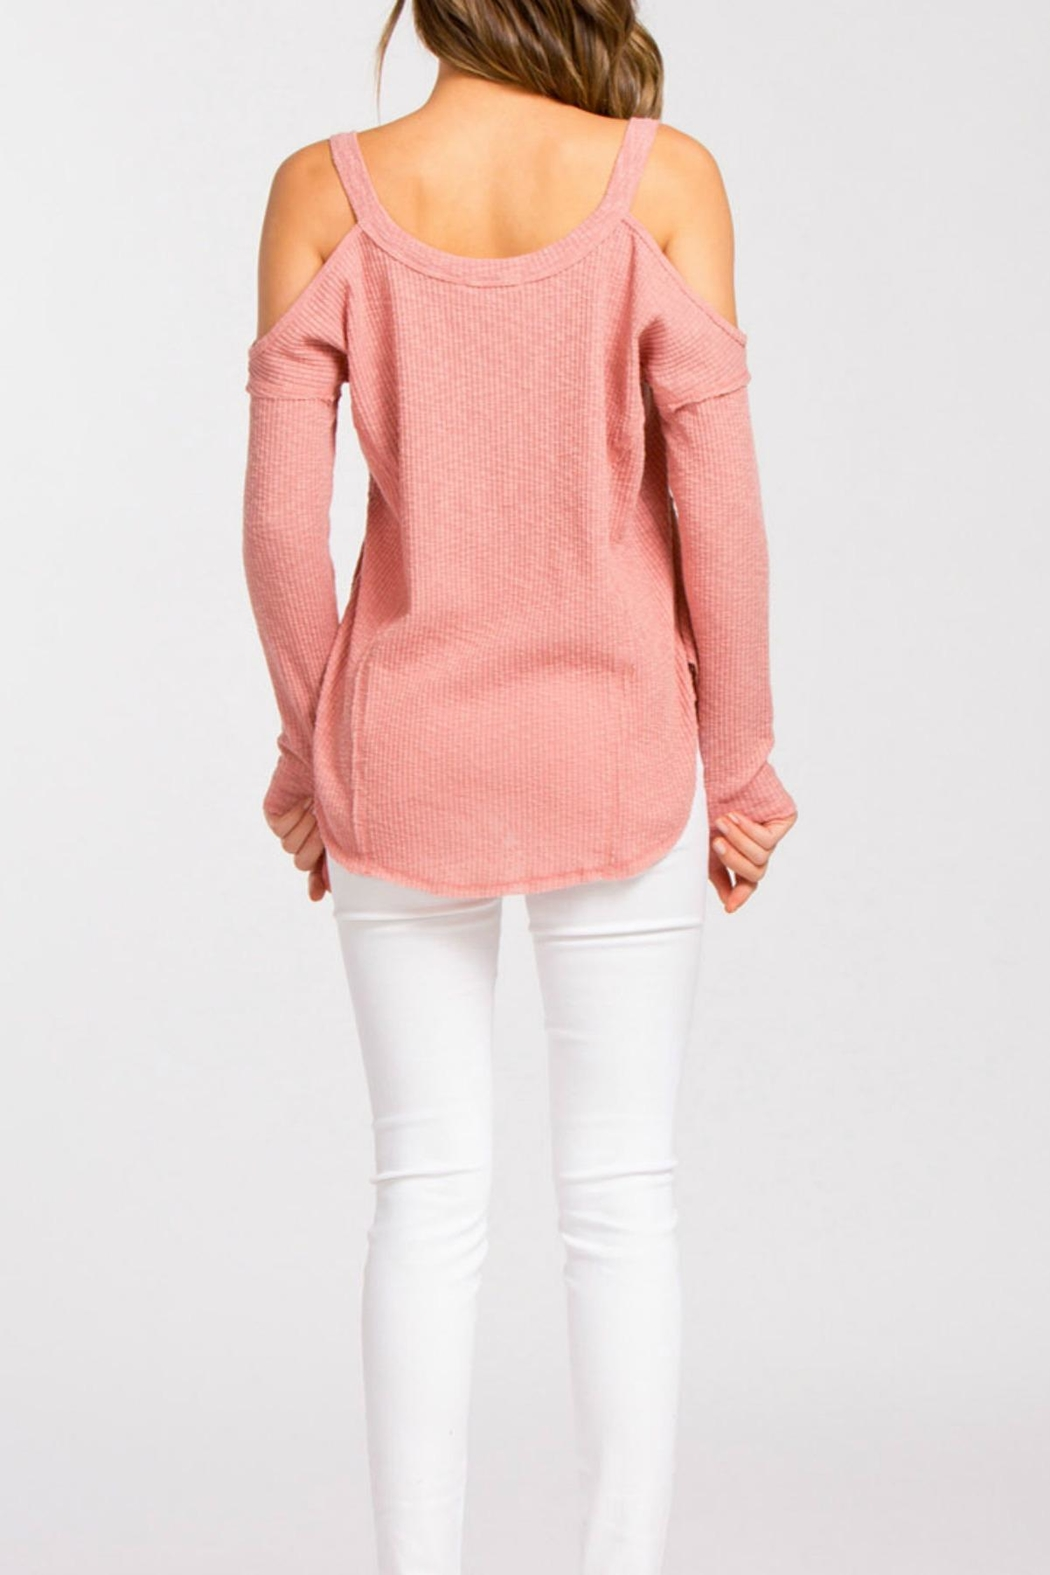 Cherish Dusty Pink Sweater from Dallas by Emmersin Rose — Shoptiques